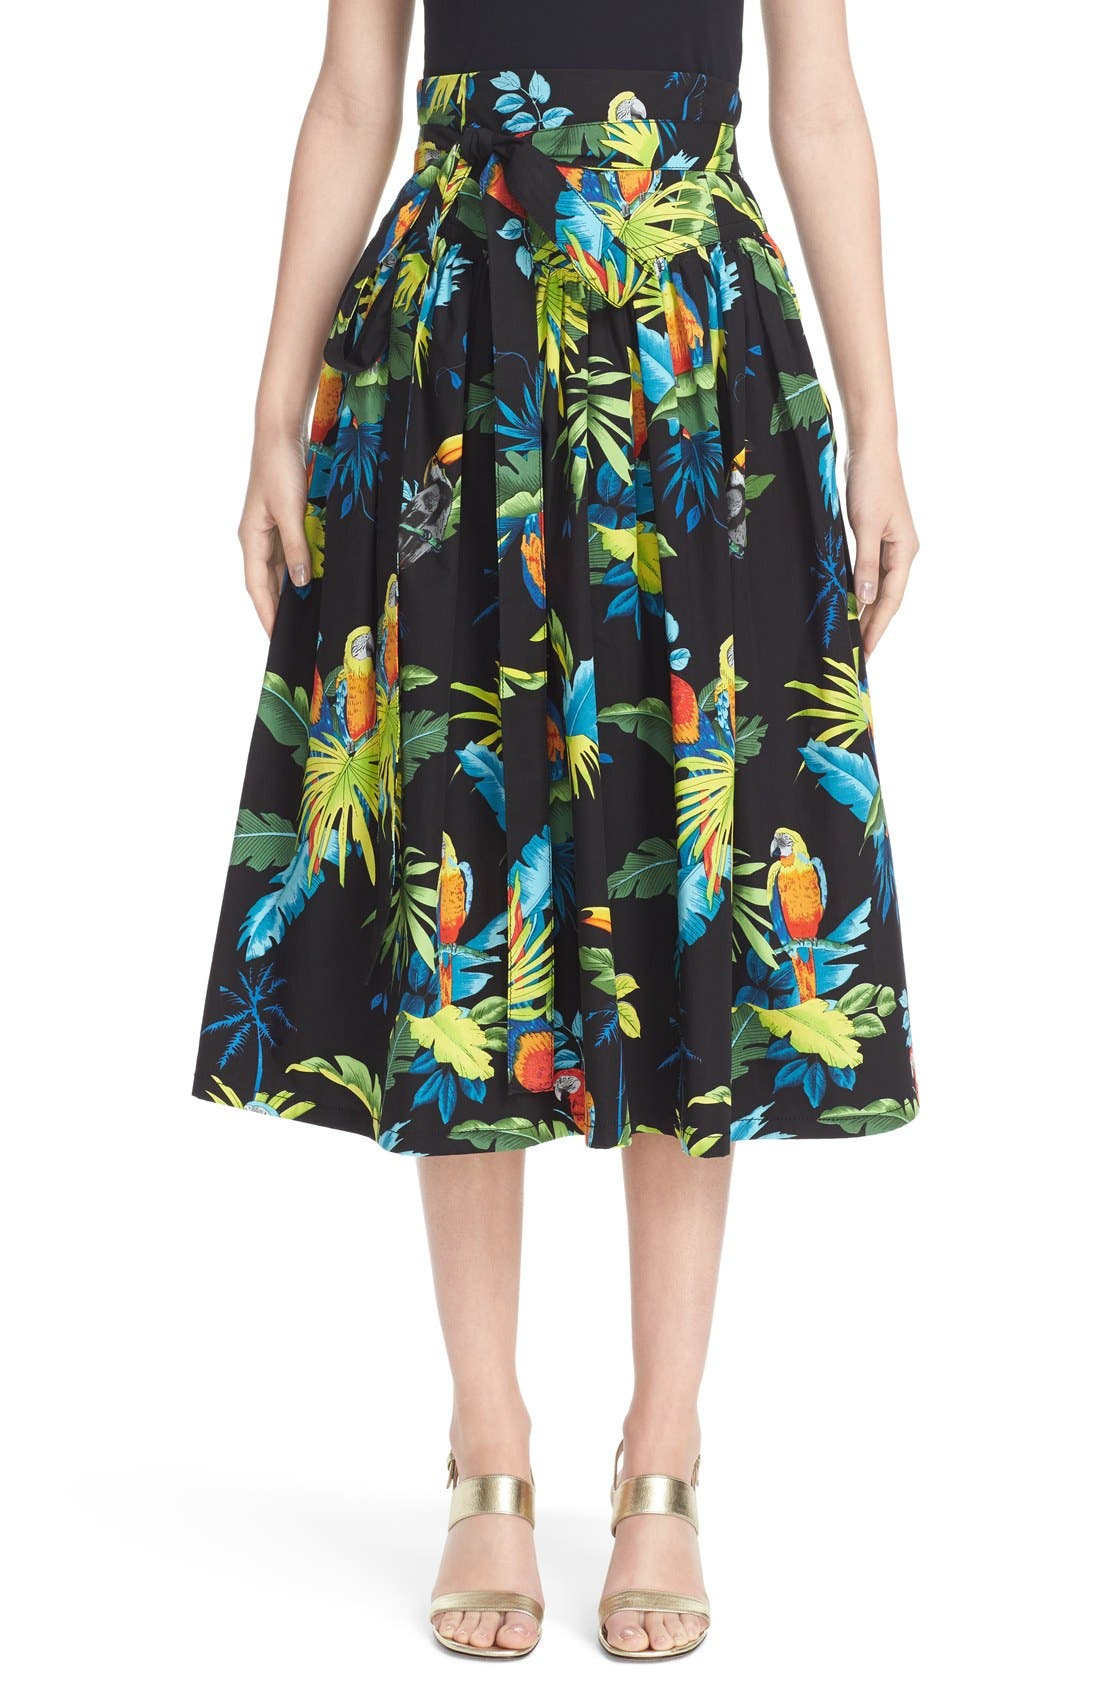 Alternate Image 1 Selected - MARC JACOBS Parrot Print Cotton Poplin Full Skirt